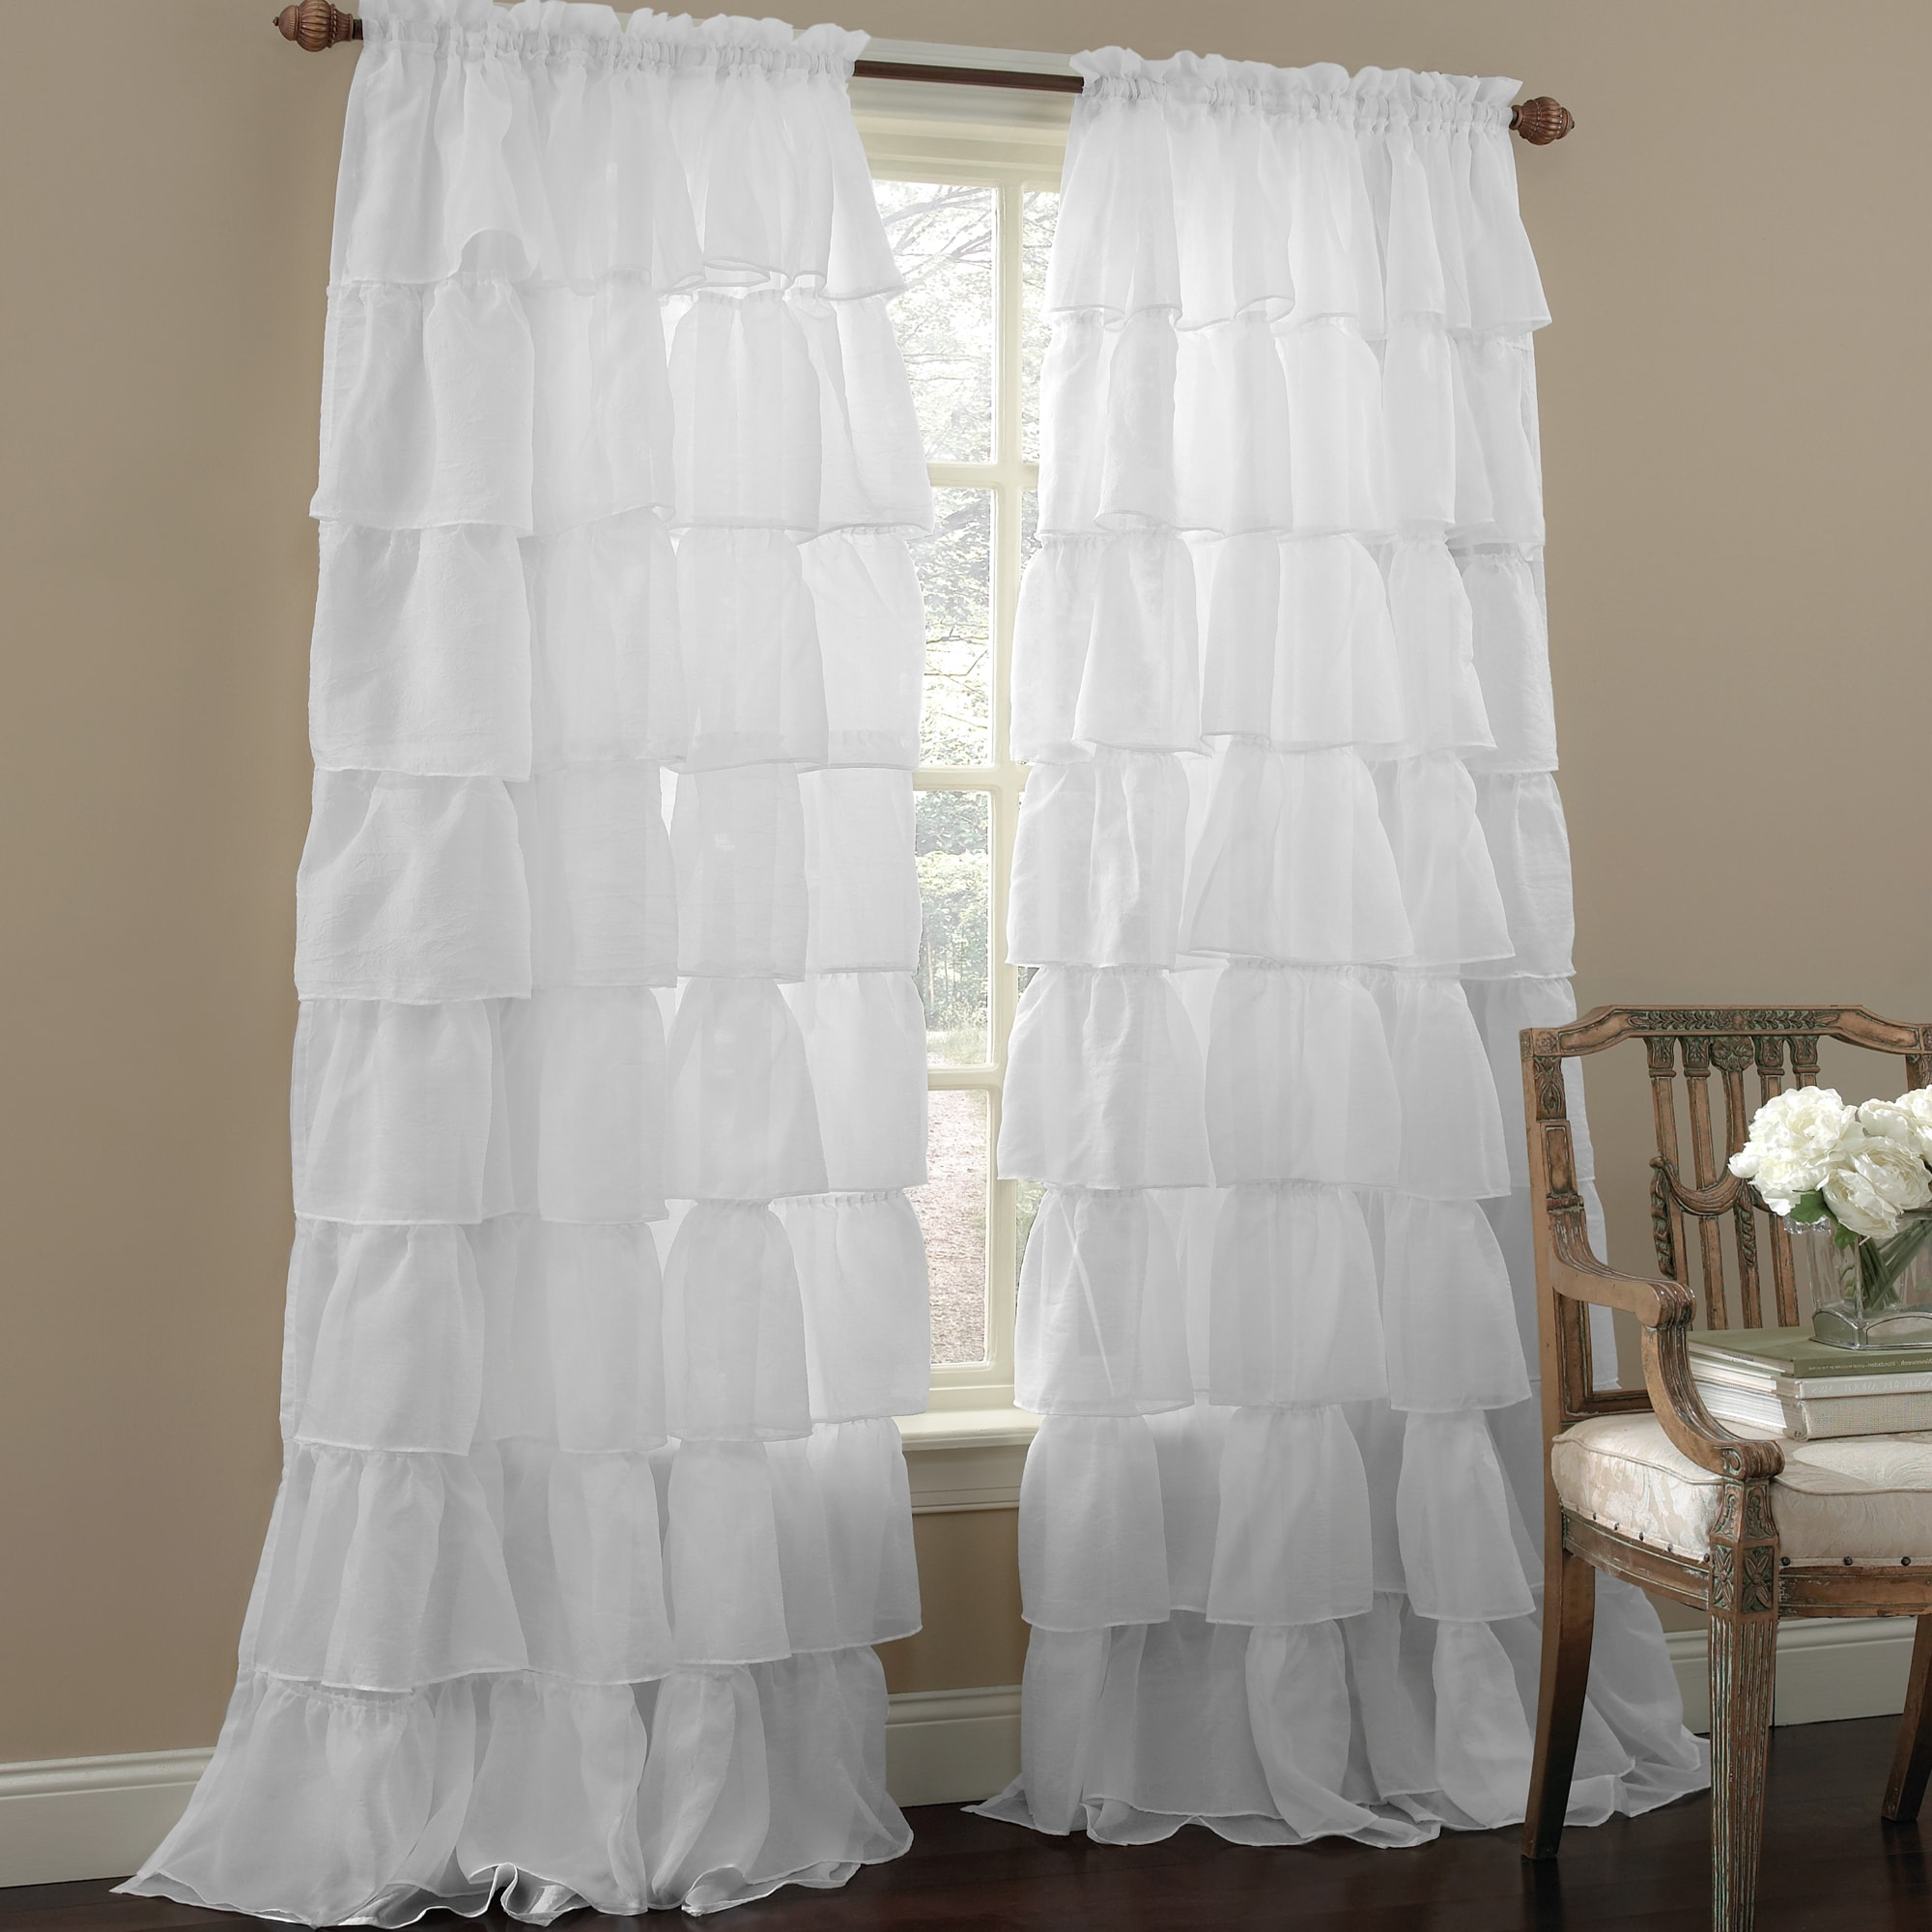 Sheer Voile Ruffled Tier Window Curtain Panels With Regard To Latest Crushed Voile Bouffant Assorted Colors 60 Inch X 84 Inch (View 16 of 20)